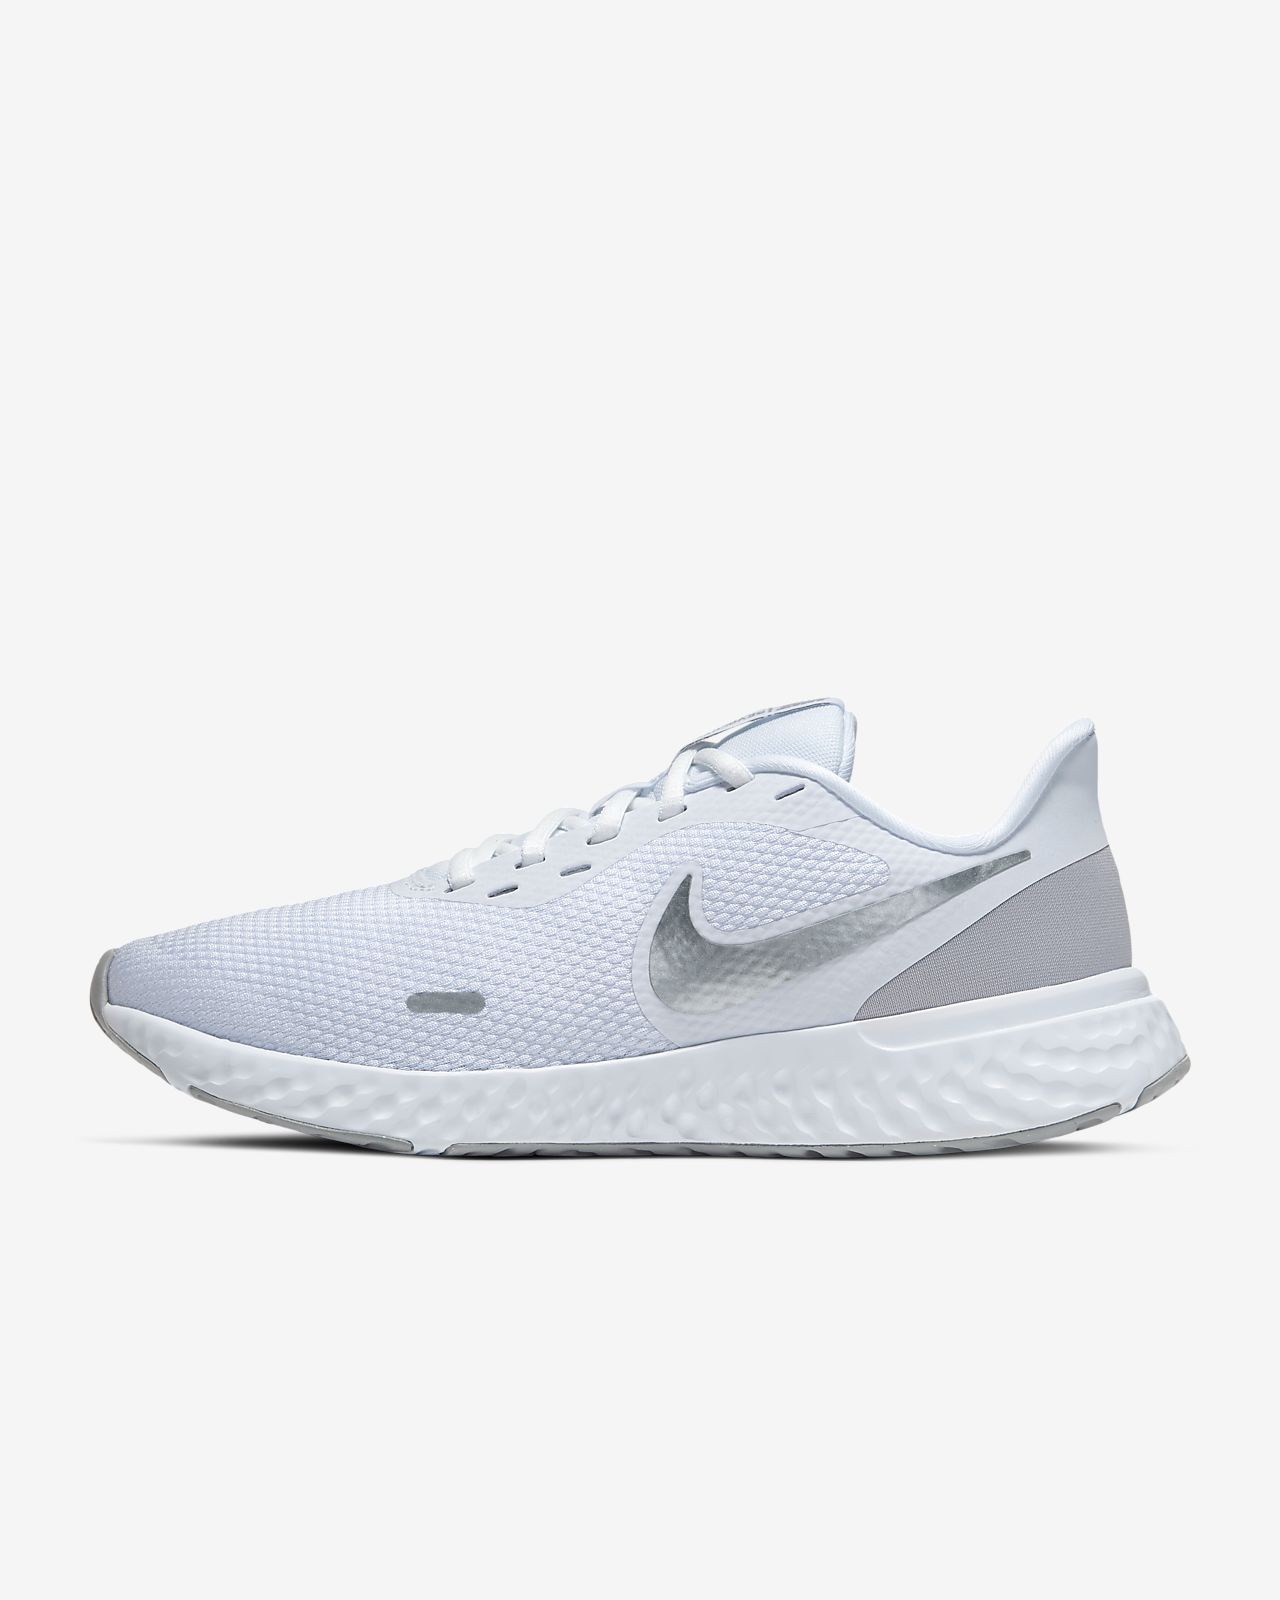 Nike Boys Shoes : Nike Men and Women's Running Shoes